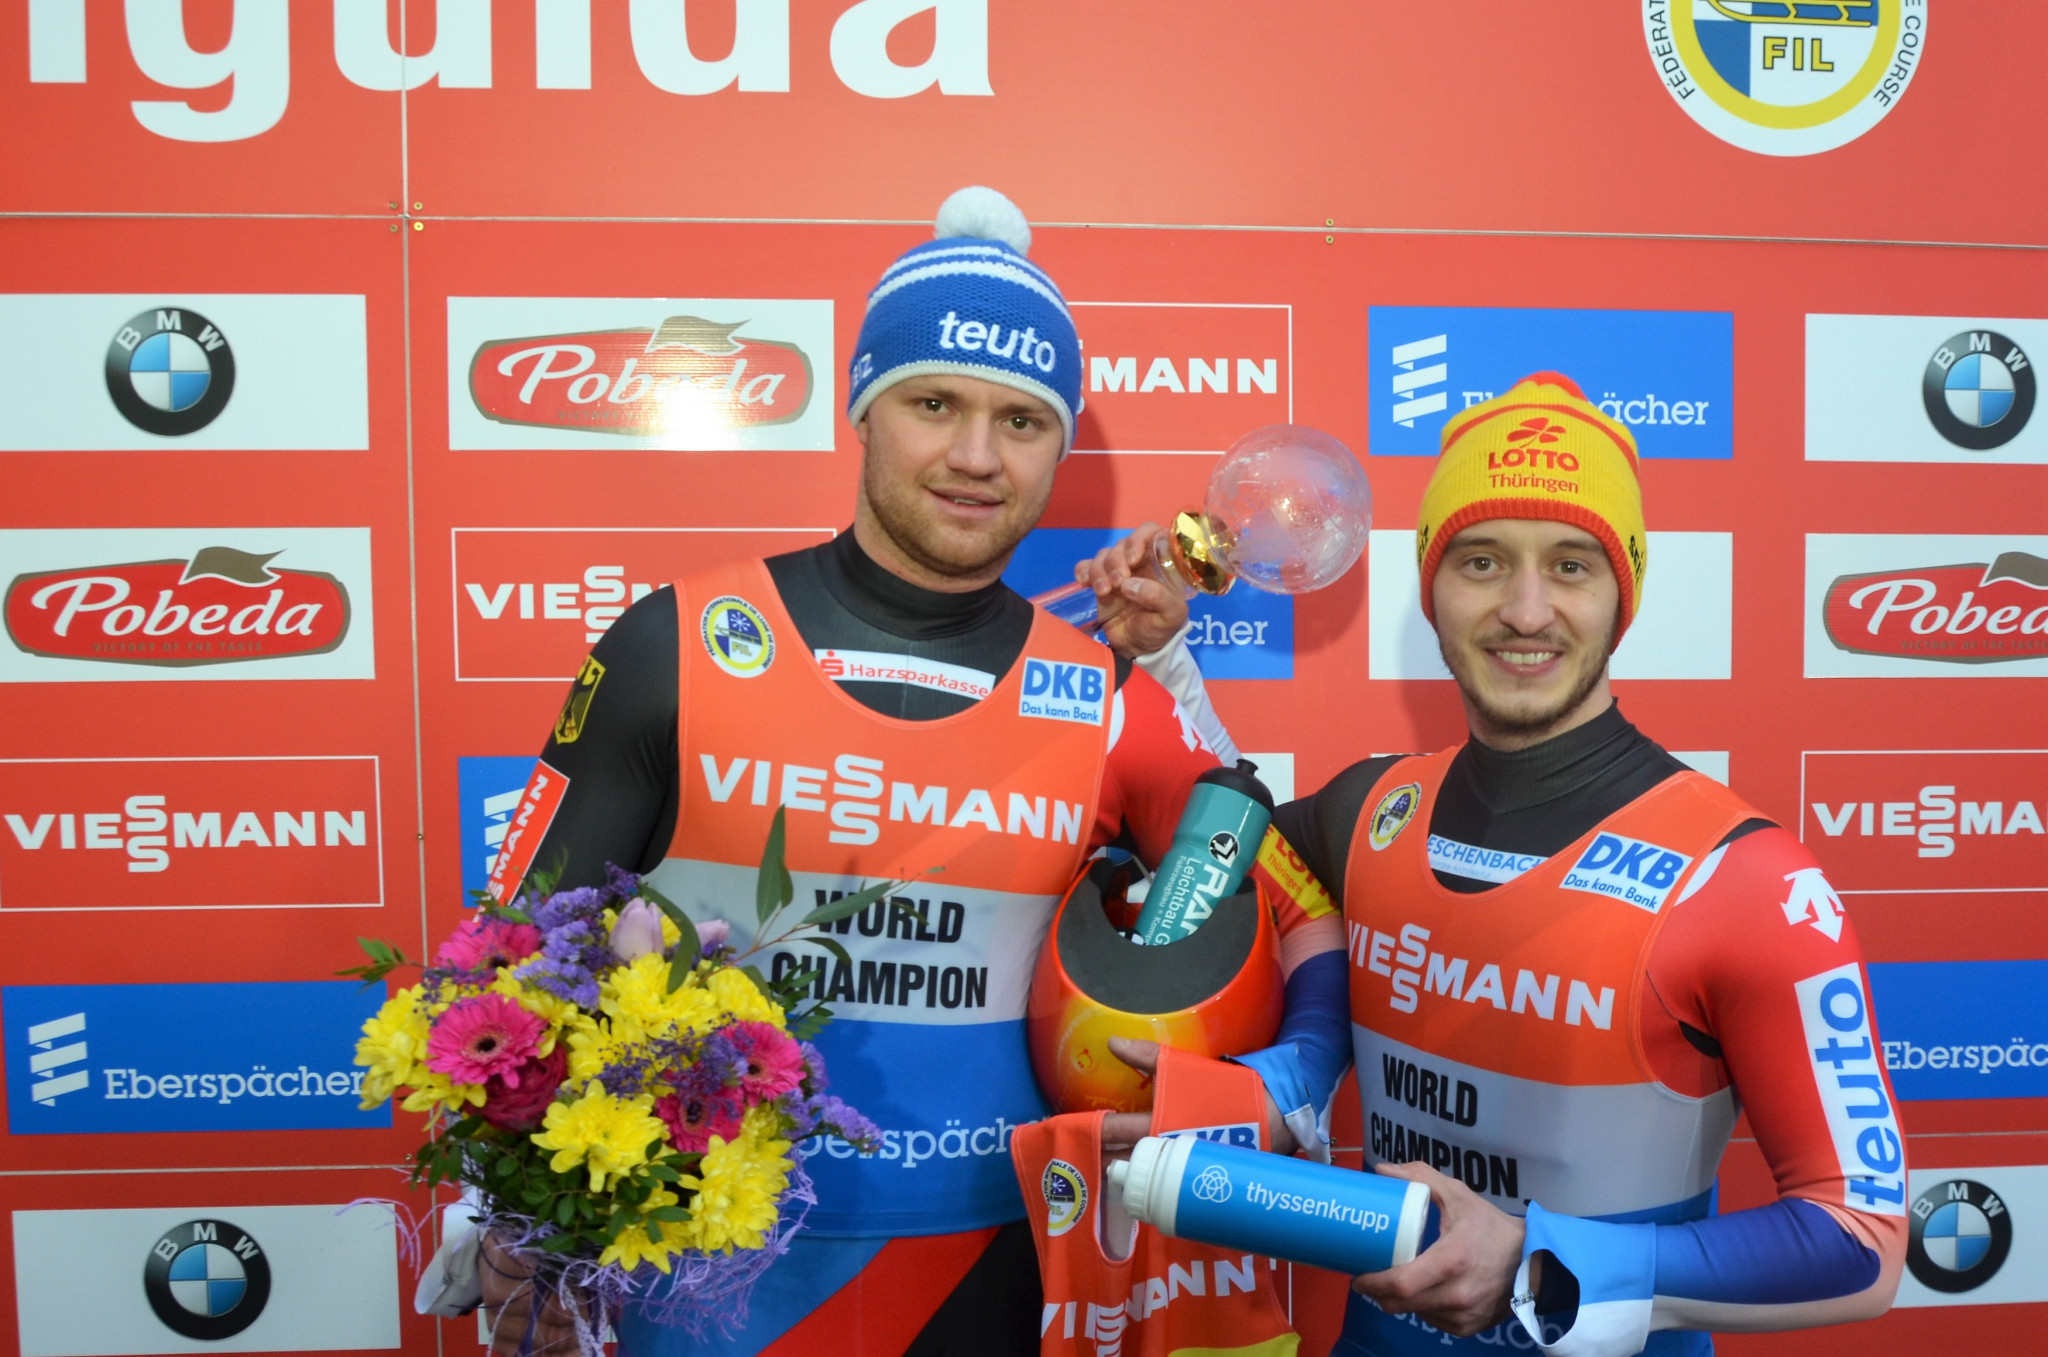 World champions Toni Eggert and Sascha Benecken enjoyed double success at the event in Sigulda as they clinched the European Championships gold medal and wrapped up the overall World Cup title ©FIL